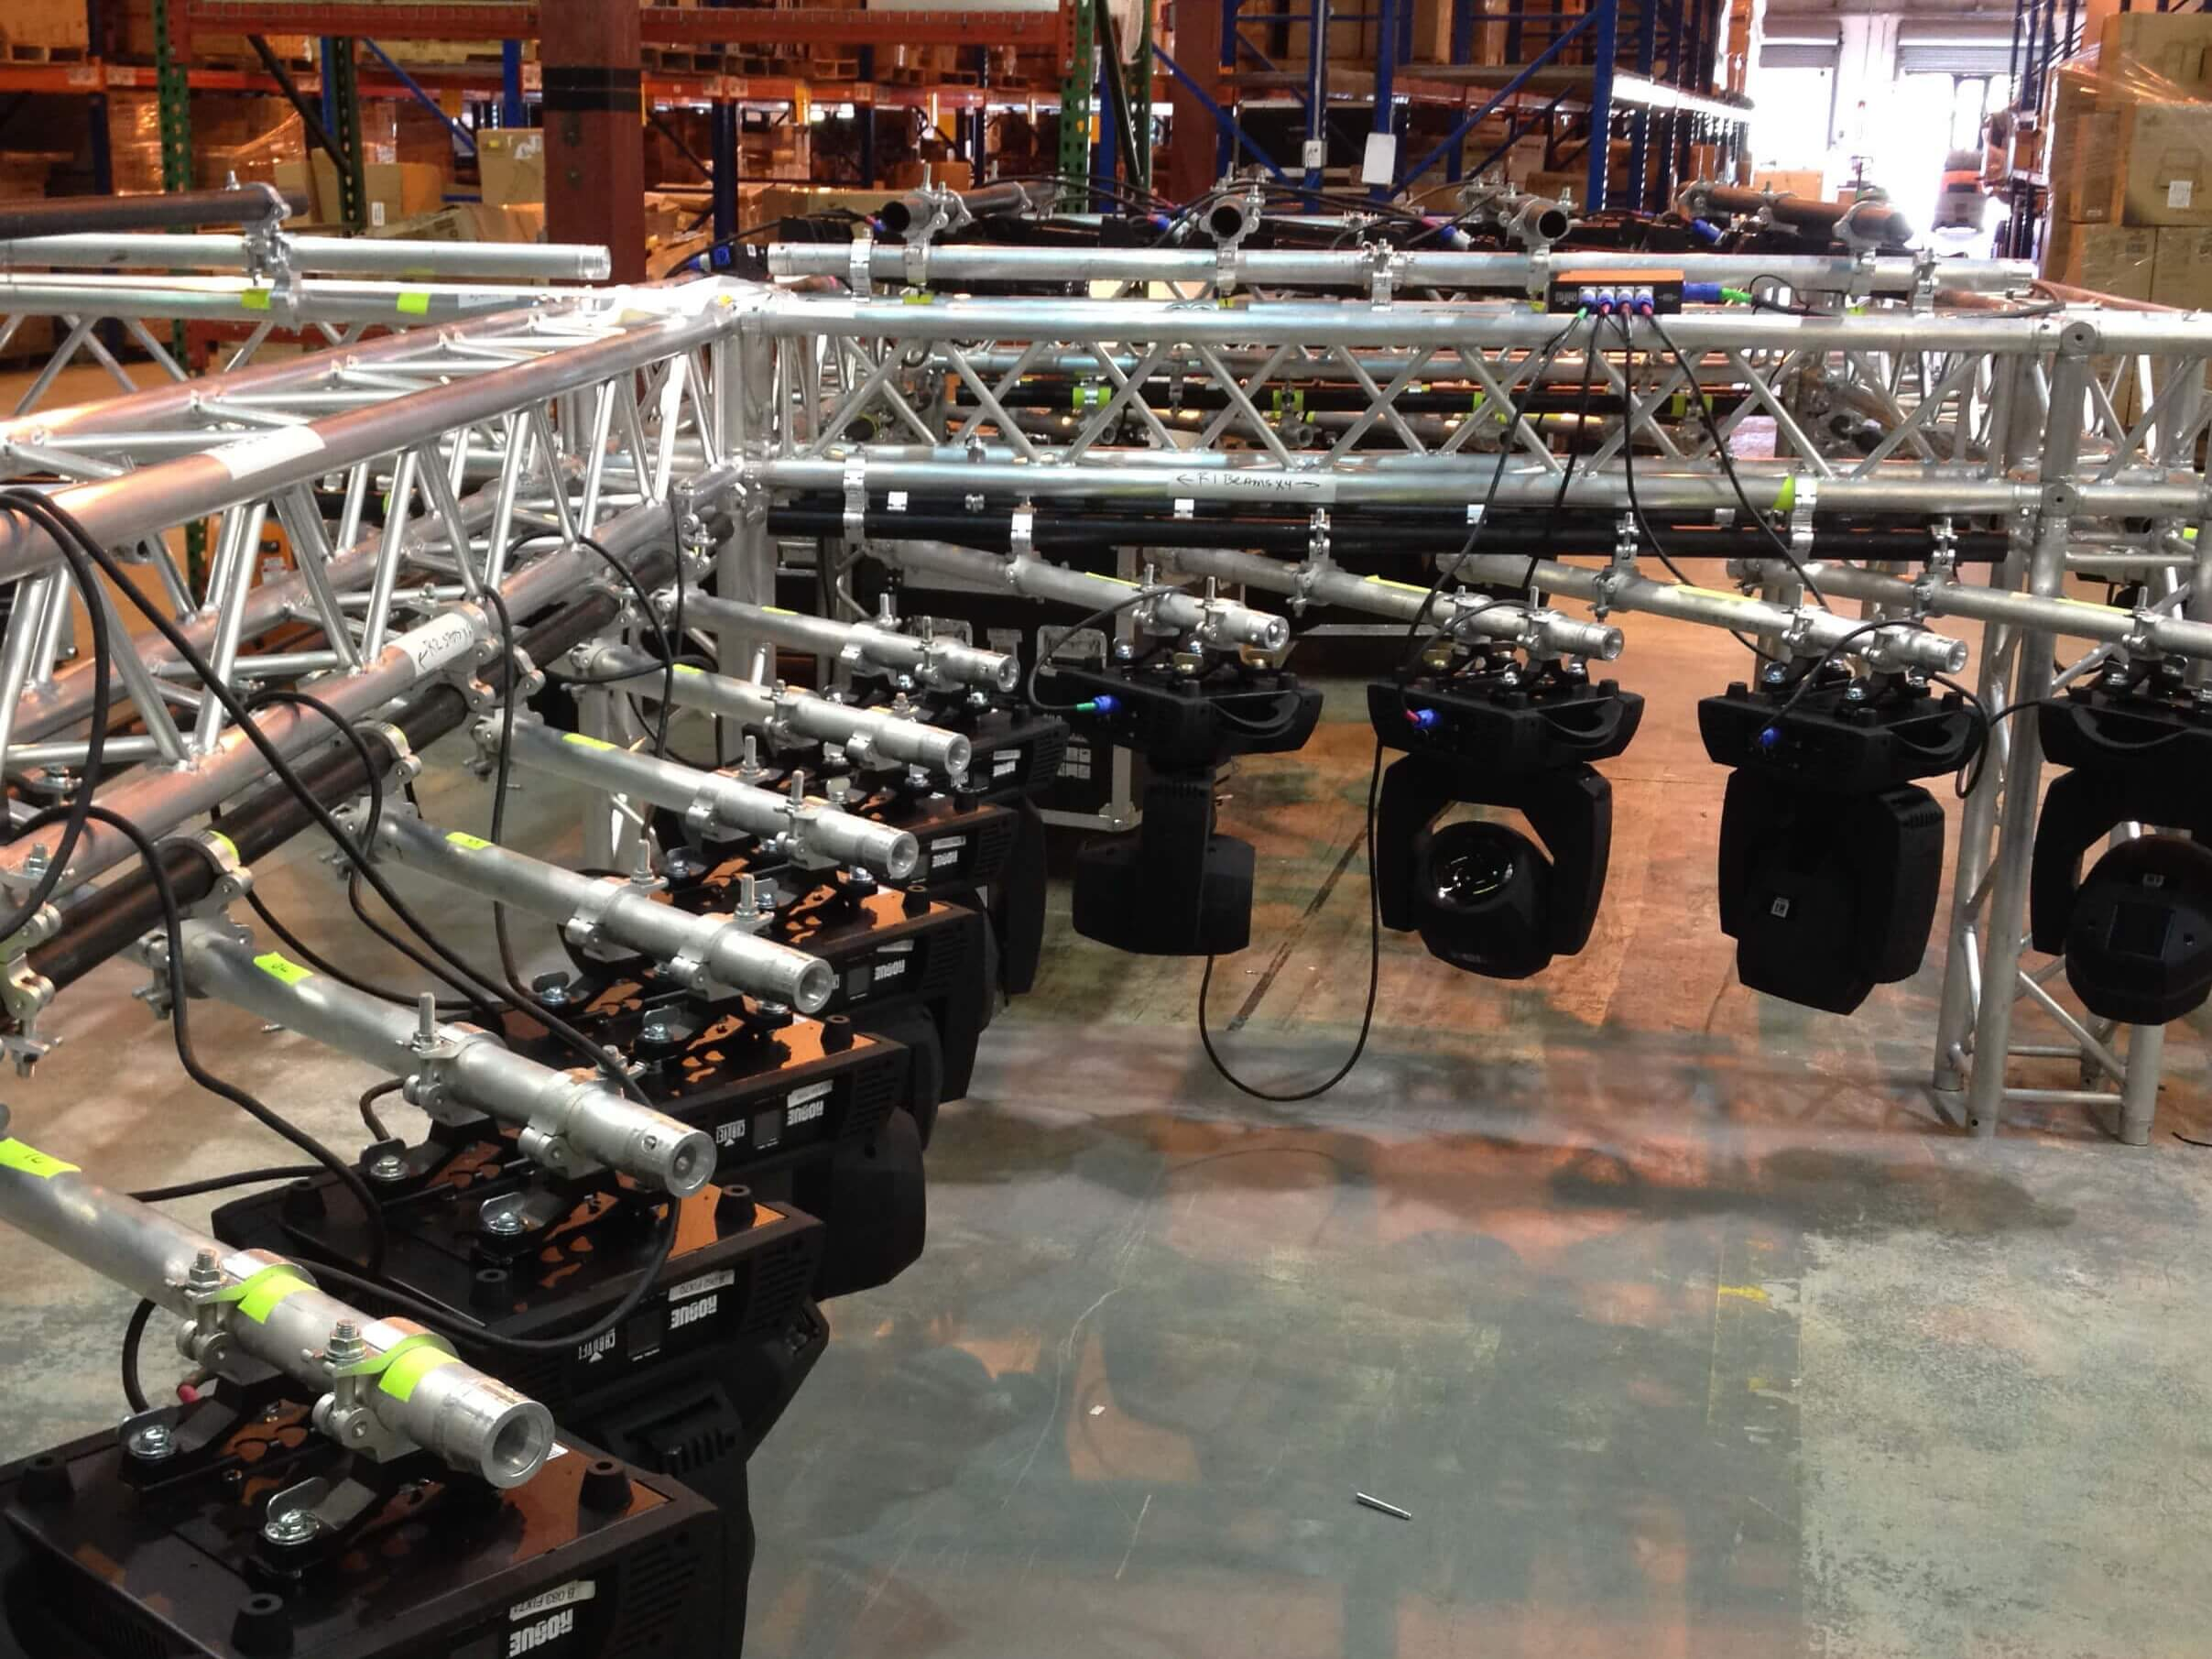 Lights hanging off a ceiling rig waiting to be installed